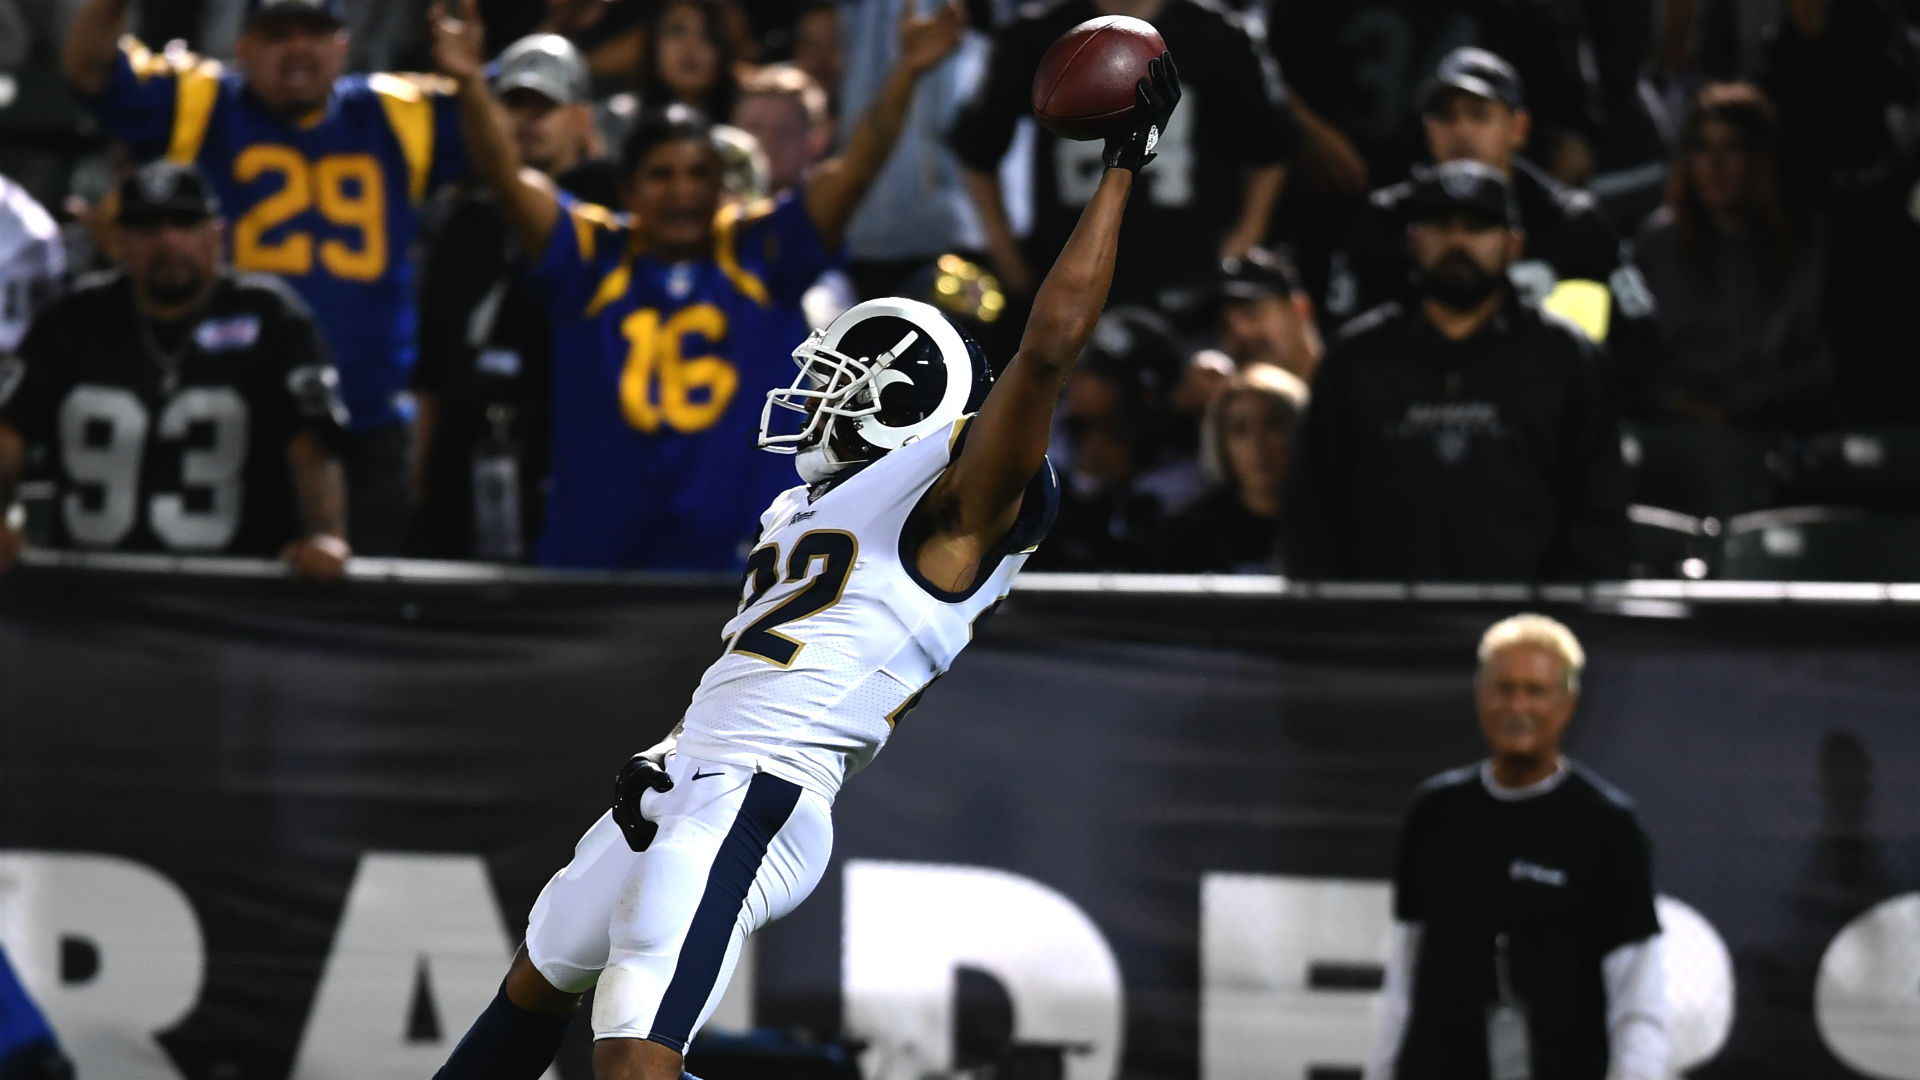 Rams' Marcus Peters fined $13K for goal-line homage to Marshawn Lynch, report says